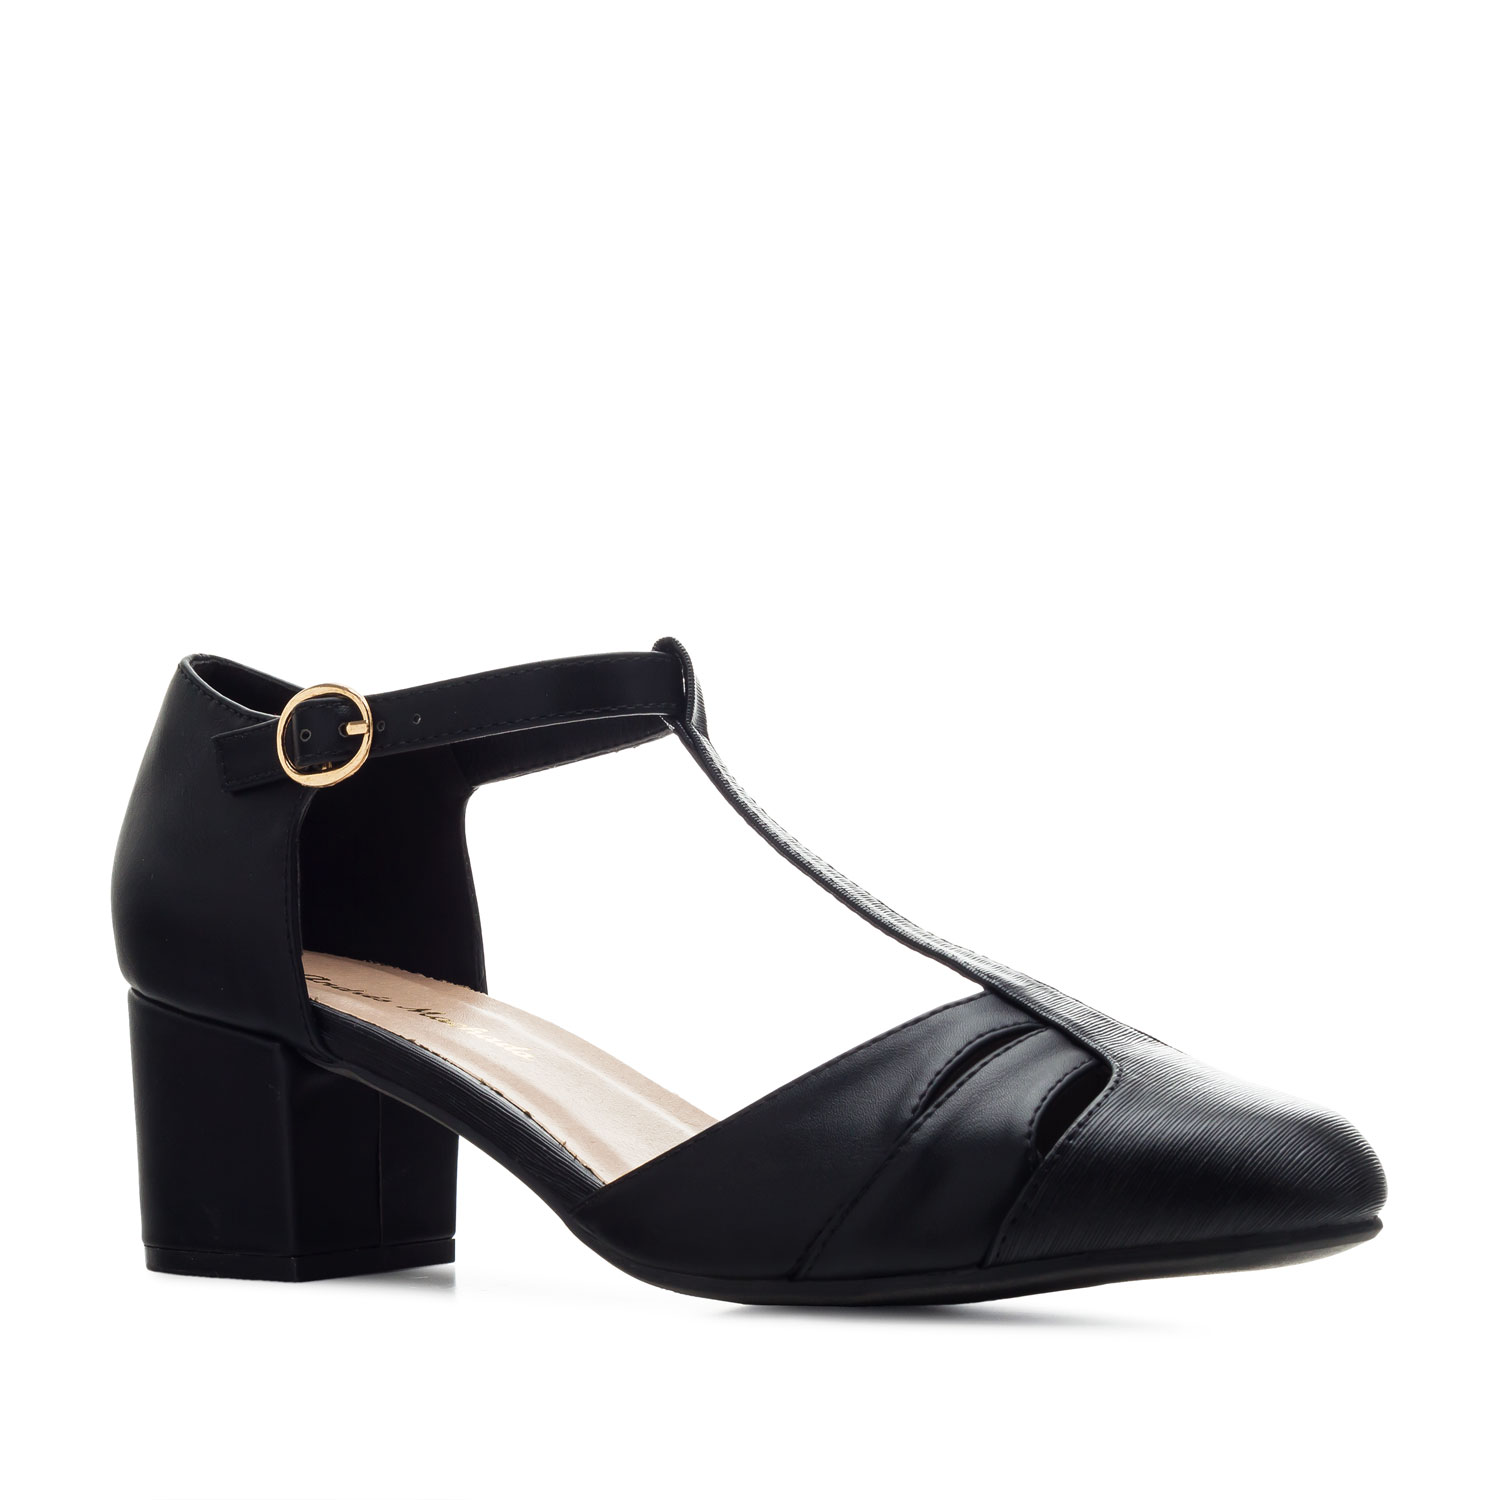 Charleston Shoes in Black faux Leather